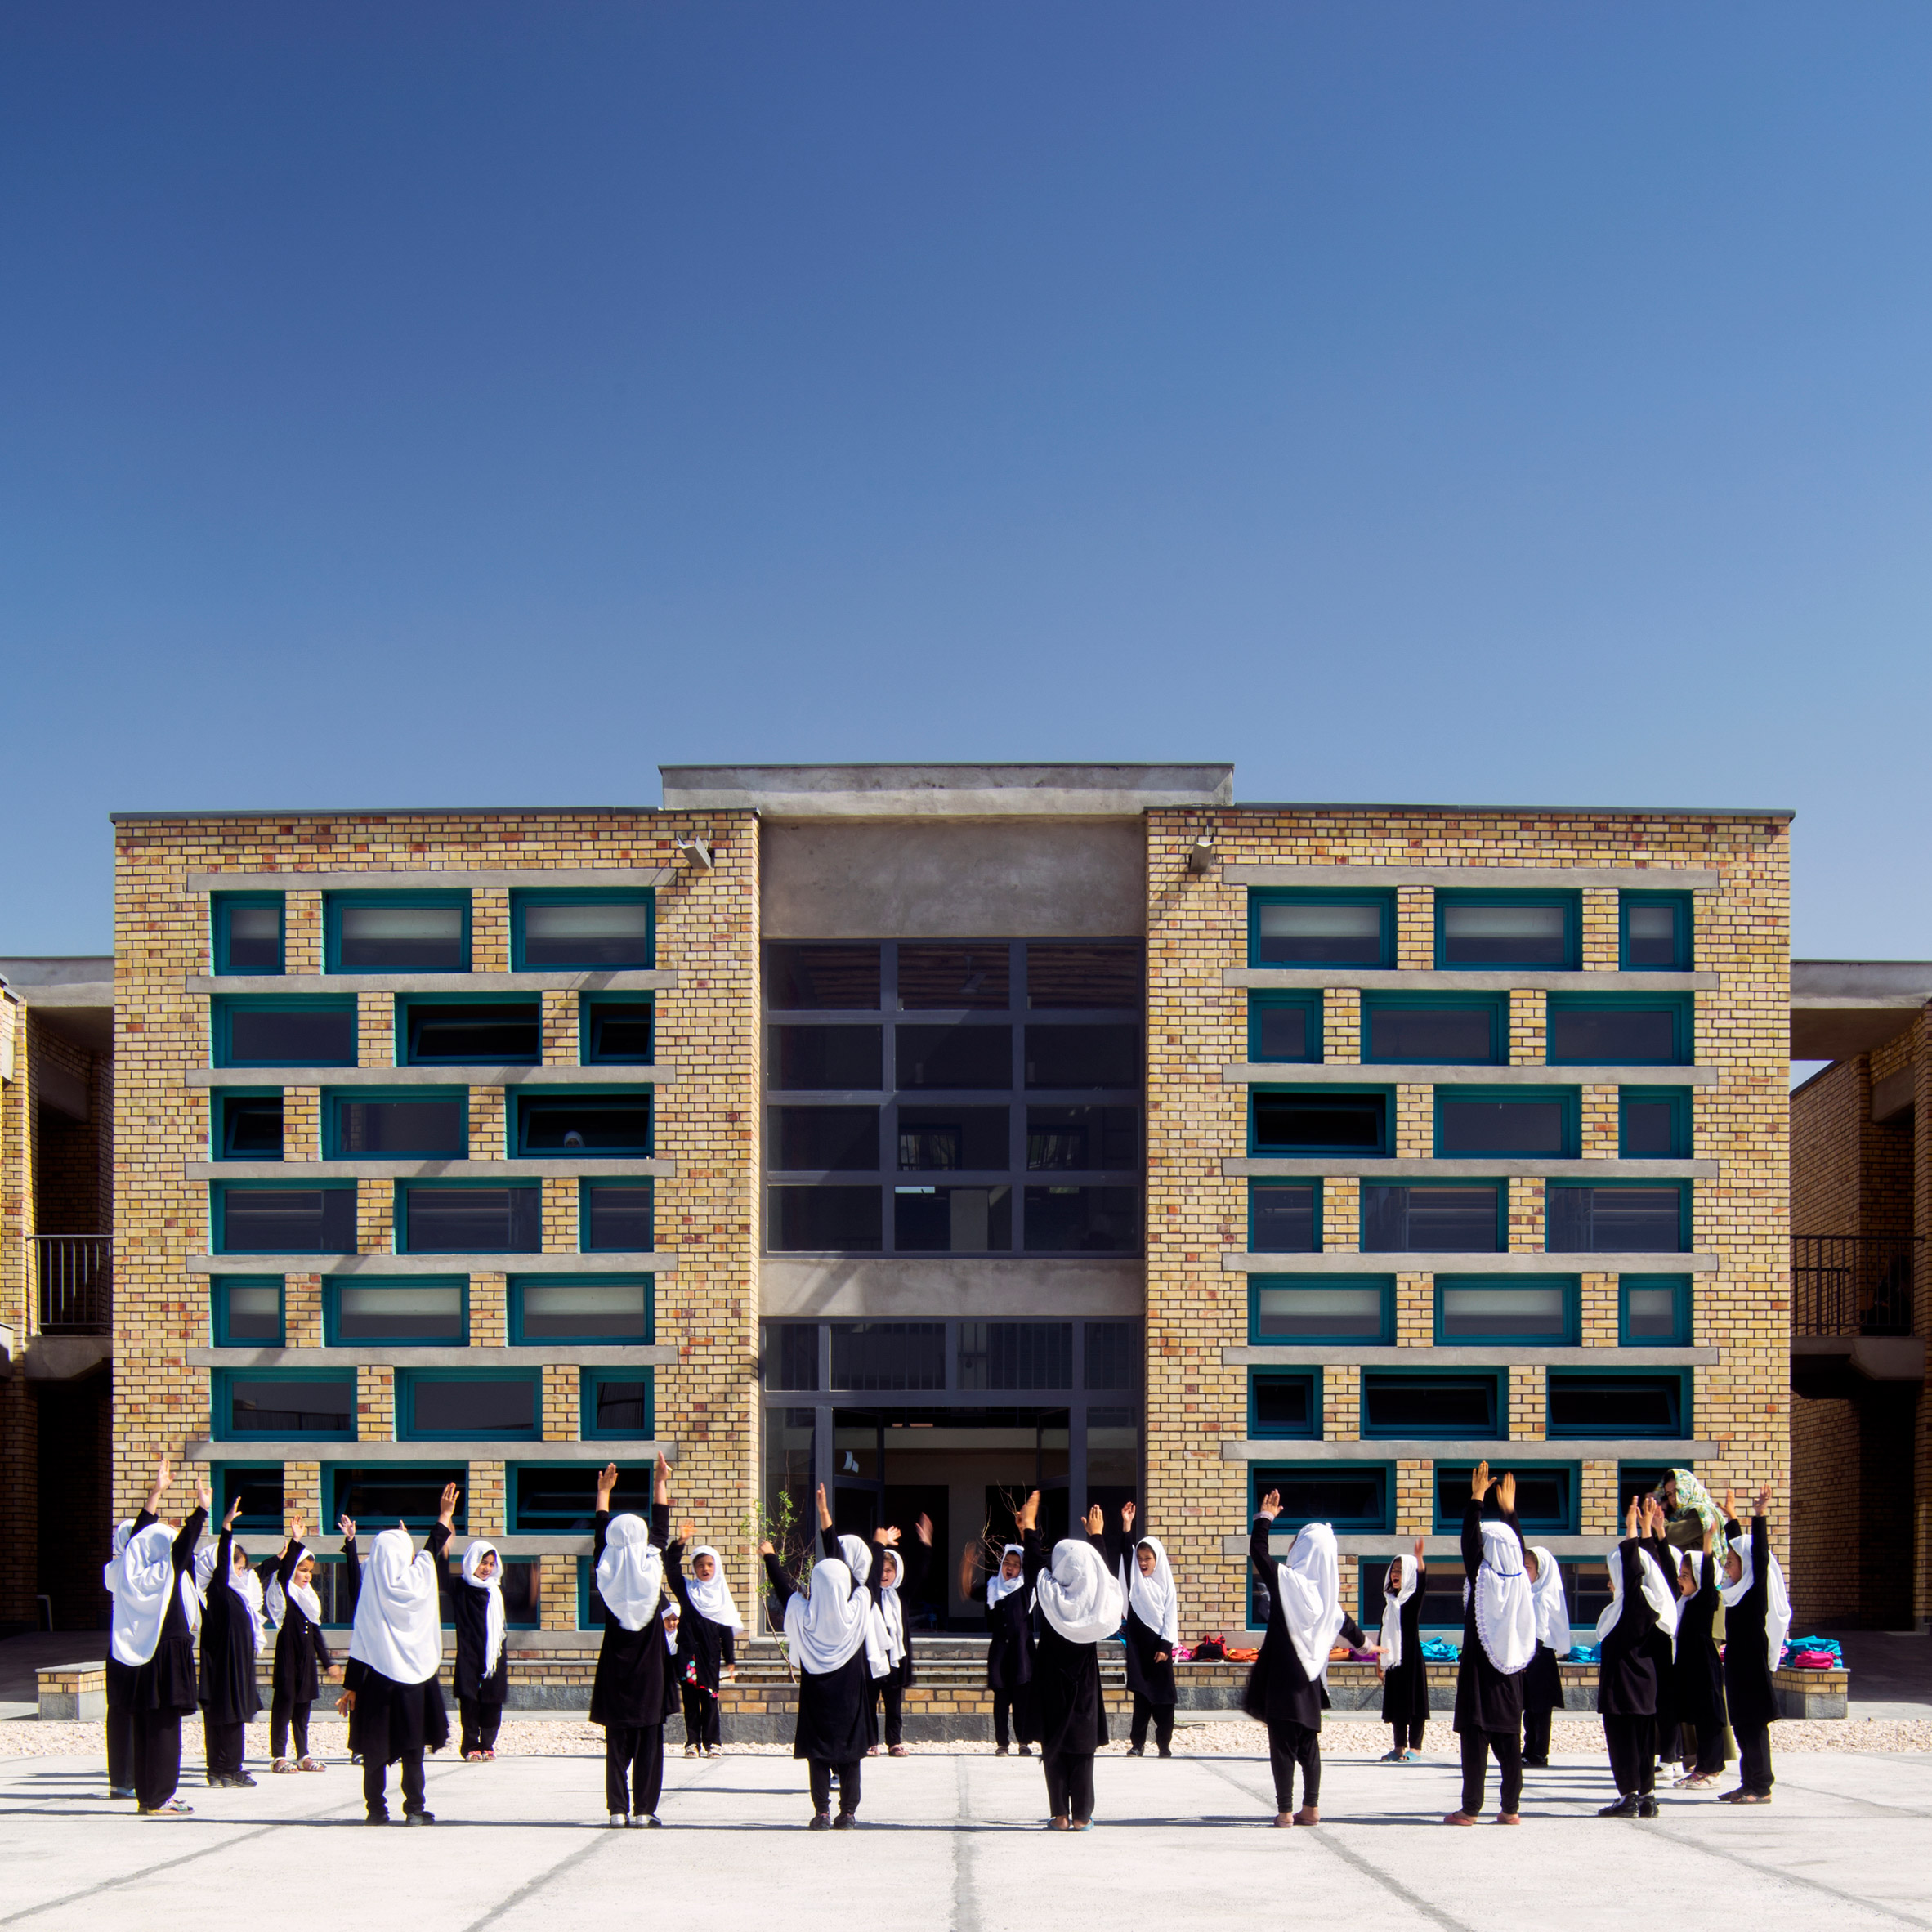 Gohar Khatoon Girls' School; Mazar-i-Sharif, Afghanistan, by Robert Hull and the University of Washington's architecture department